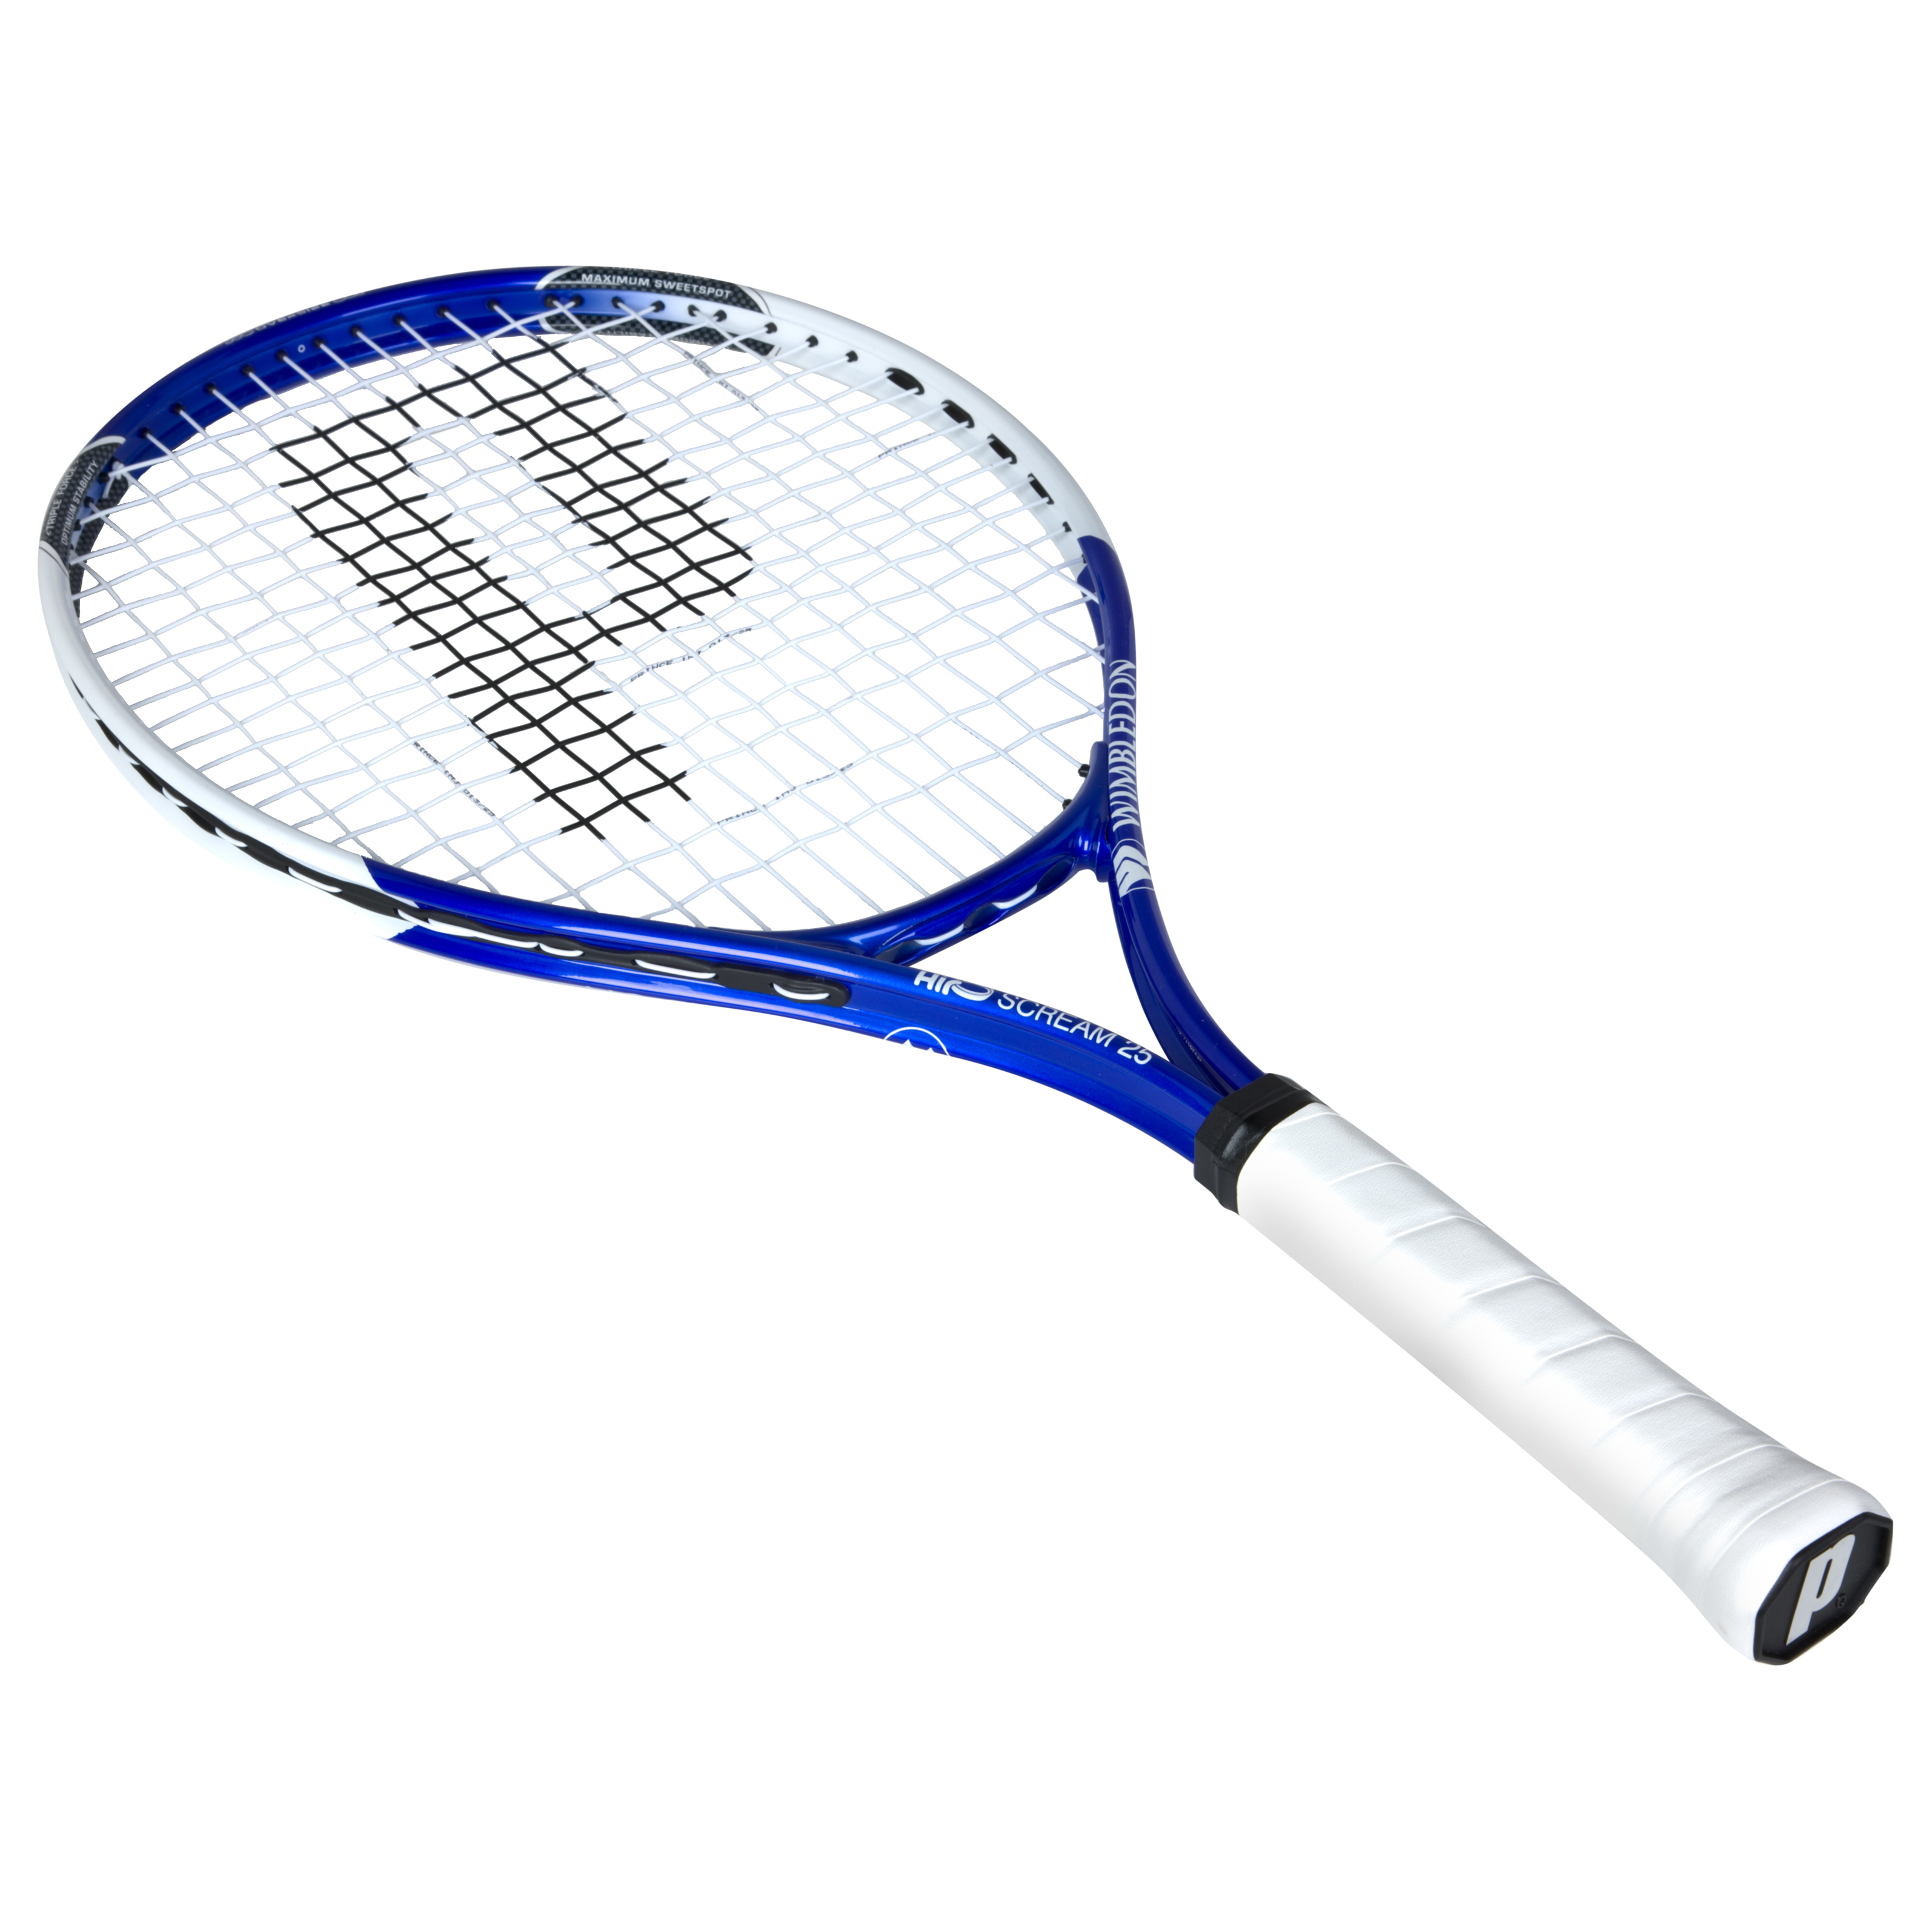 Wimbledon By Prince Airo Scream 25 Tennis Racket - Blue/White